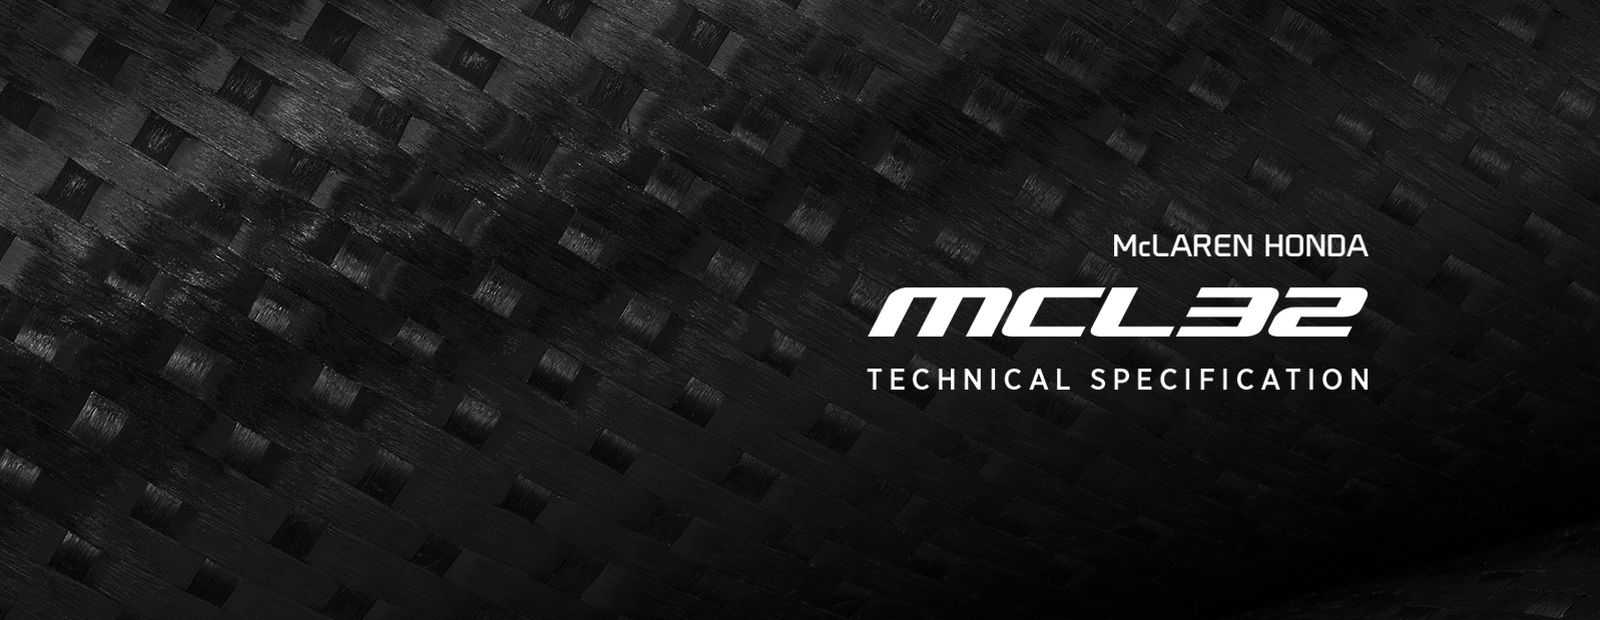 McLaren-Honda MCL32 Technical Specification